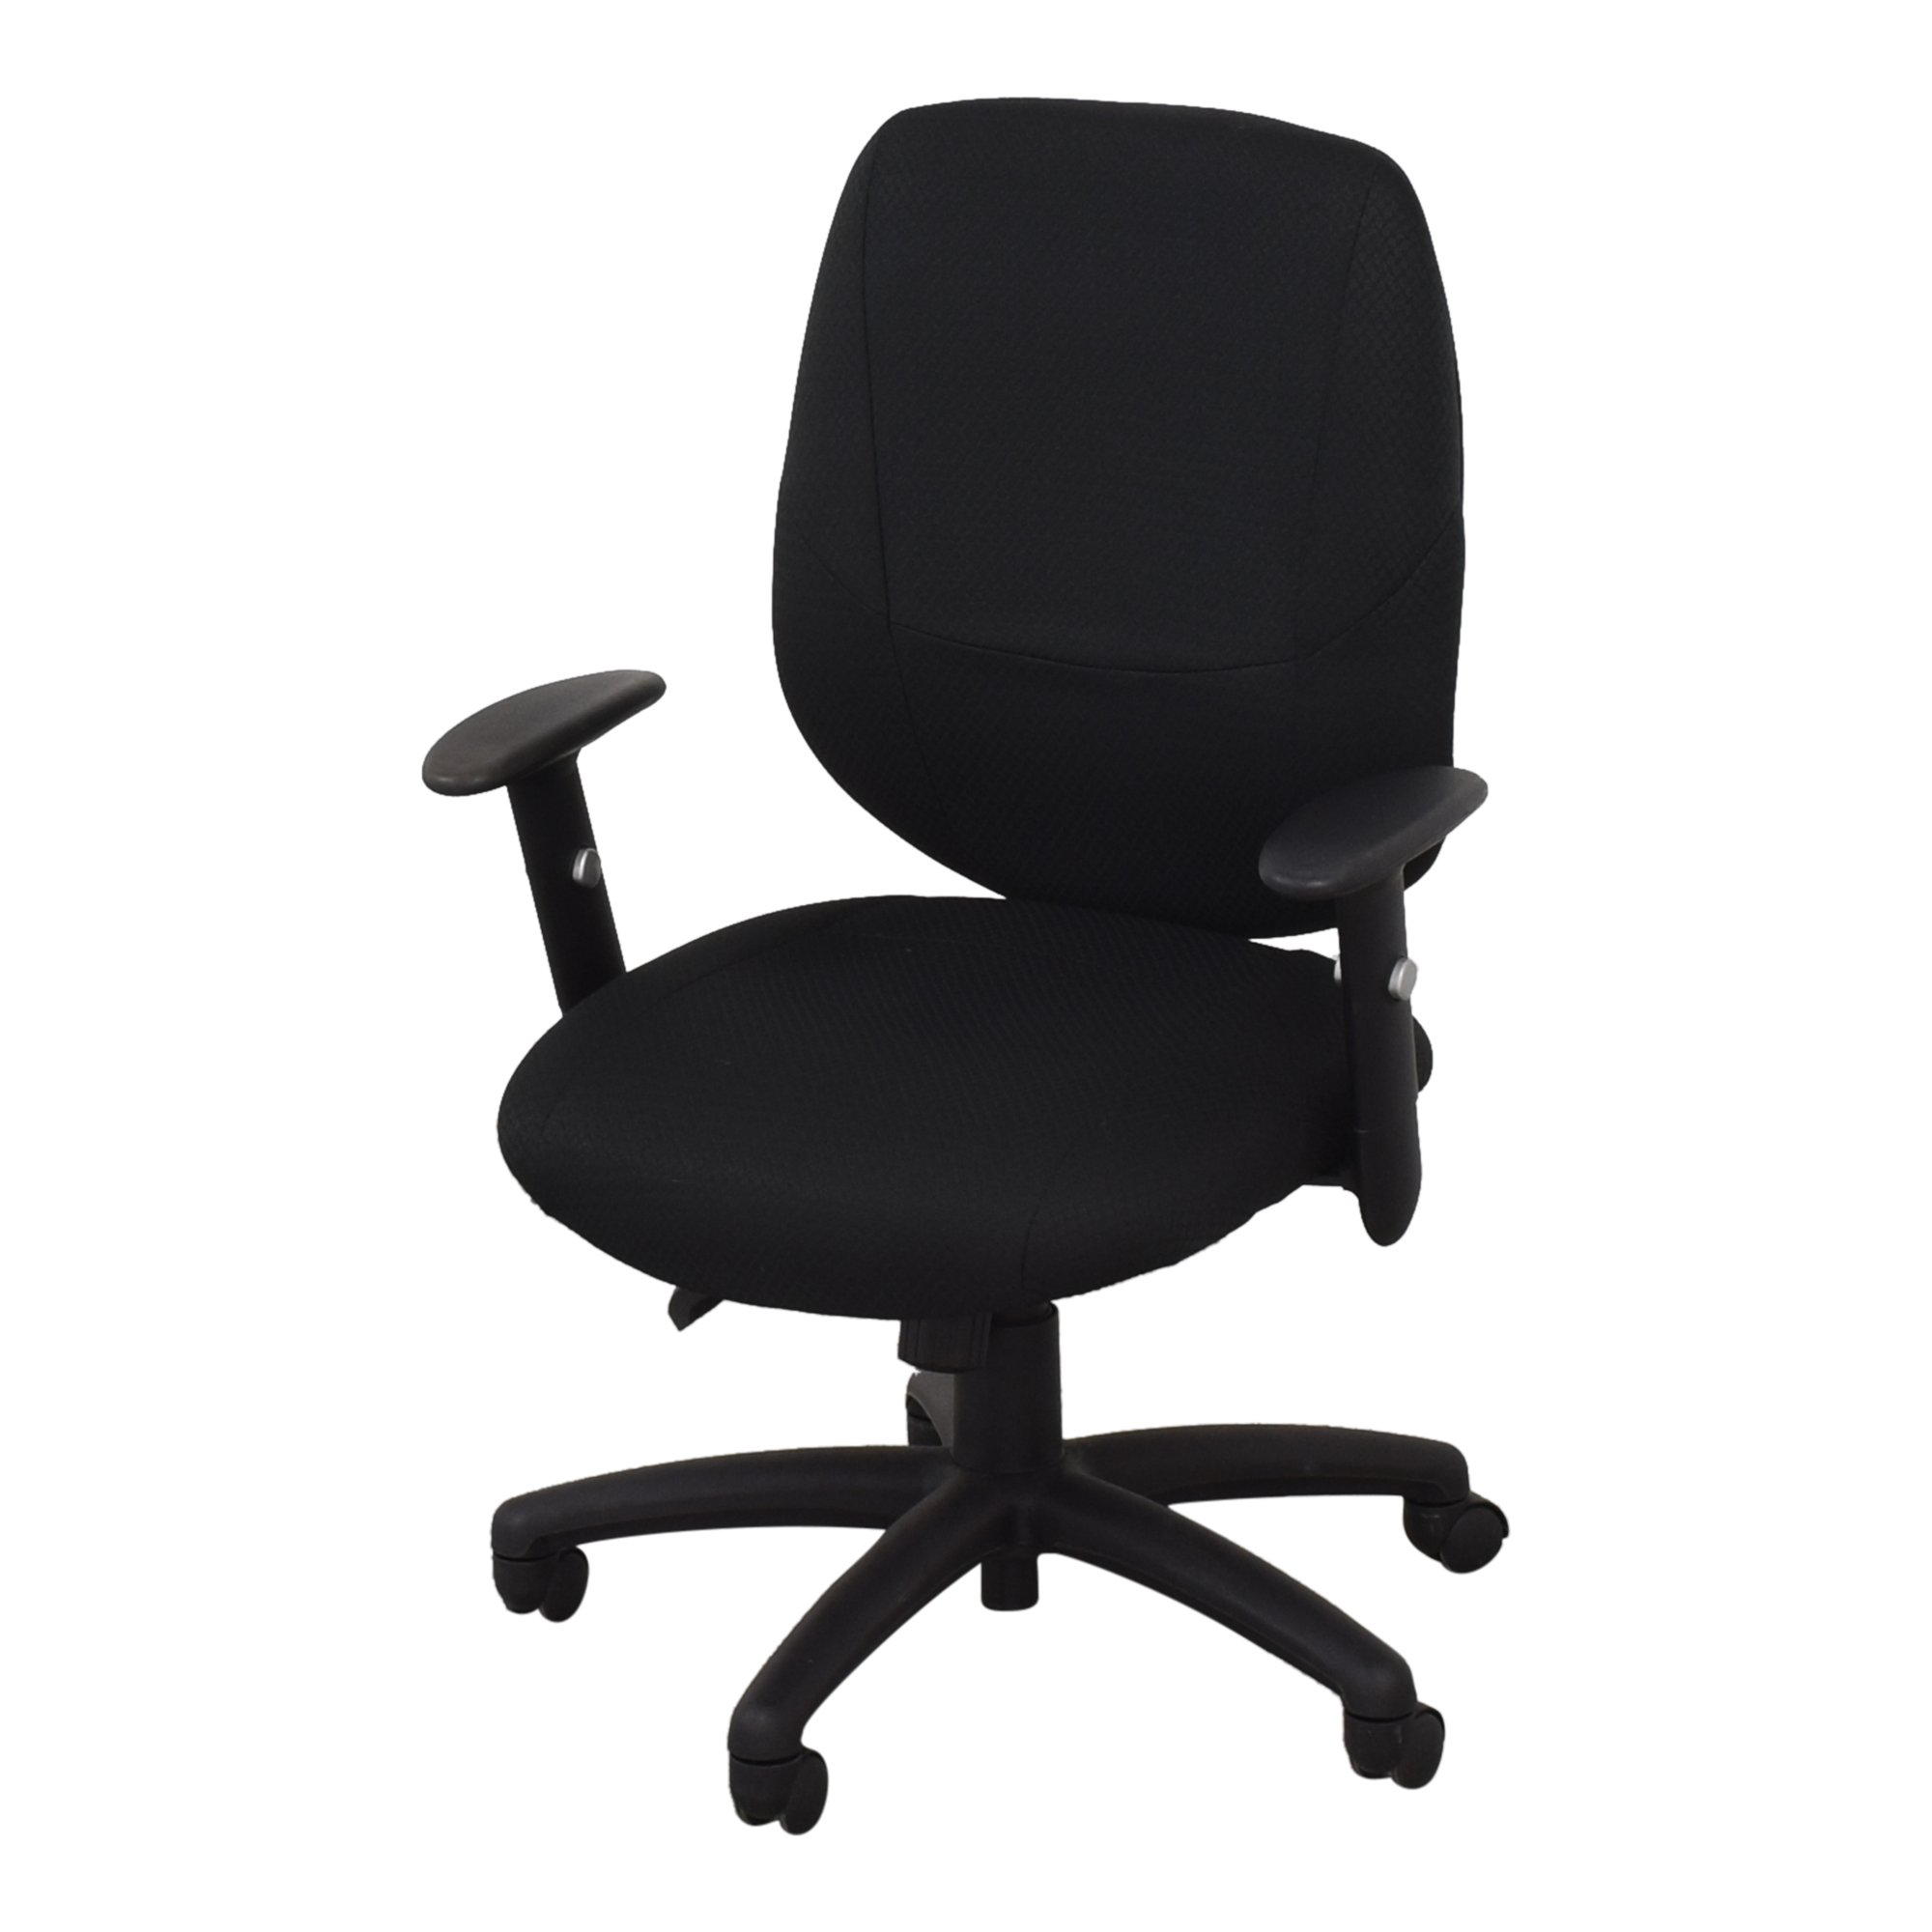 Offices to Go Offices to Go Adjustable Office Chair Chairs